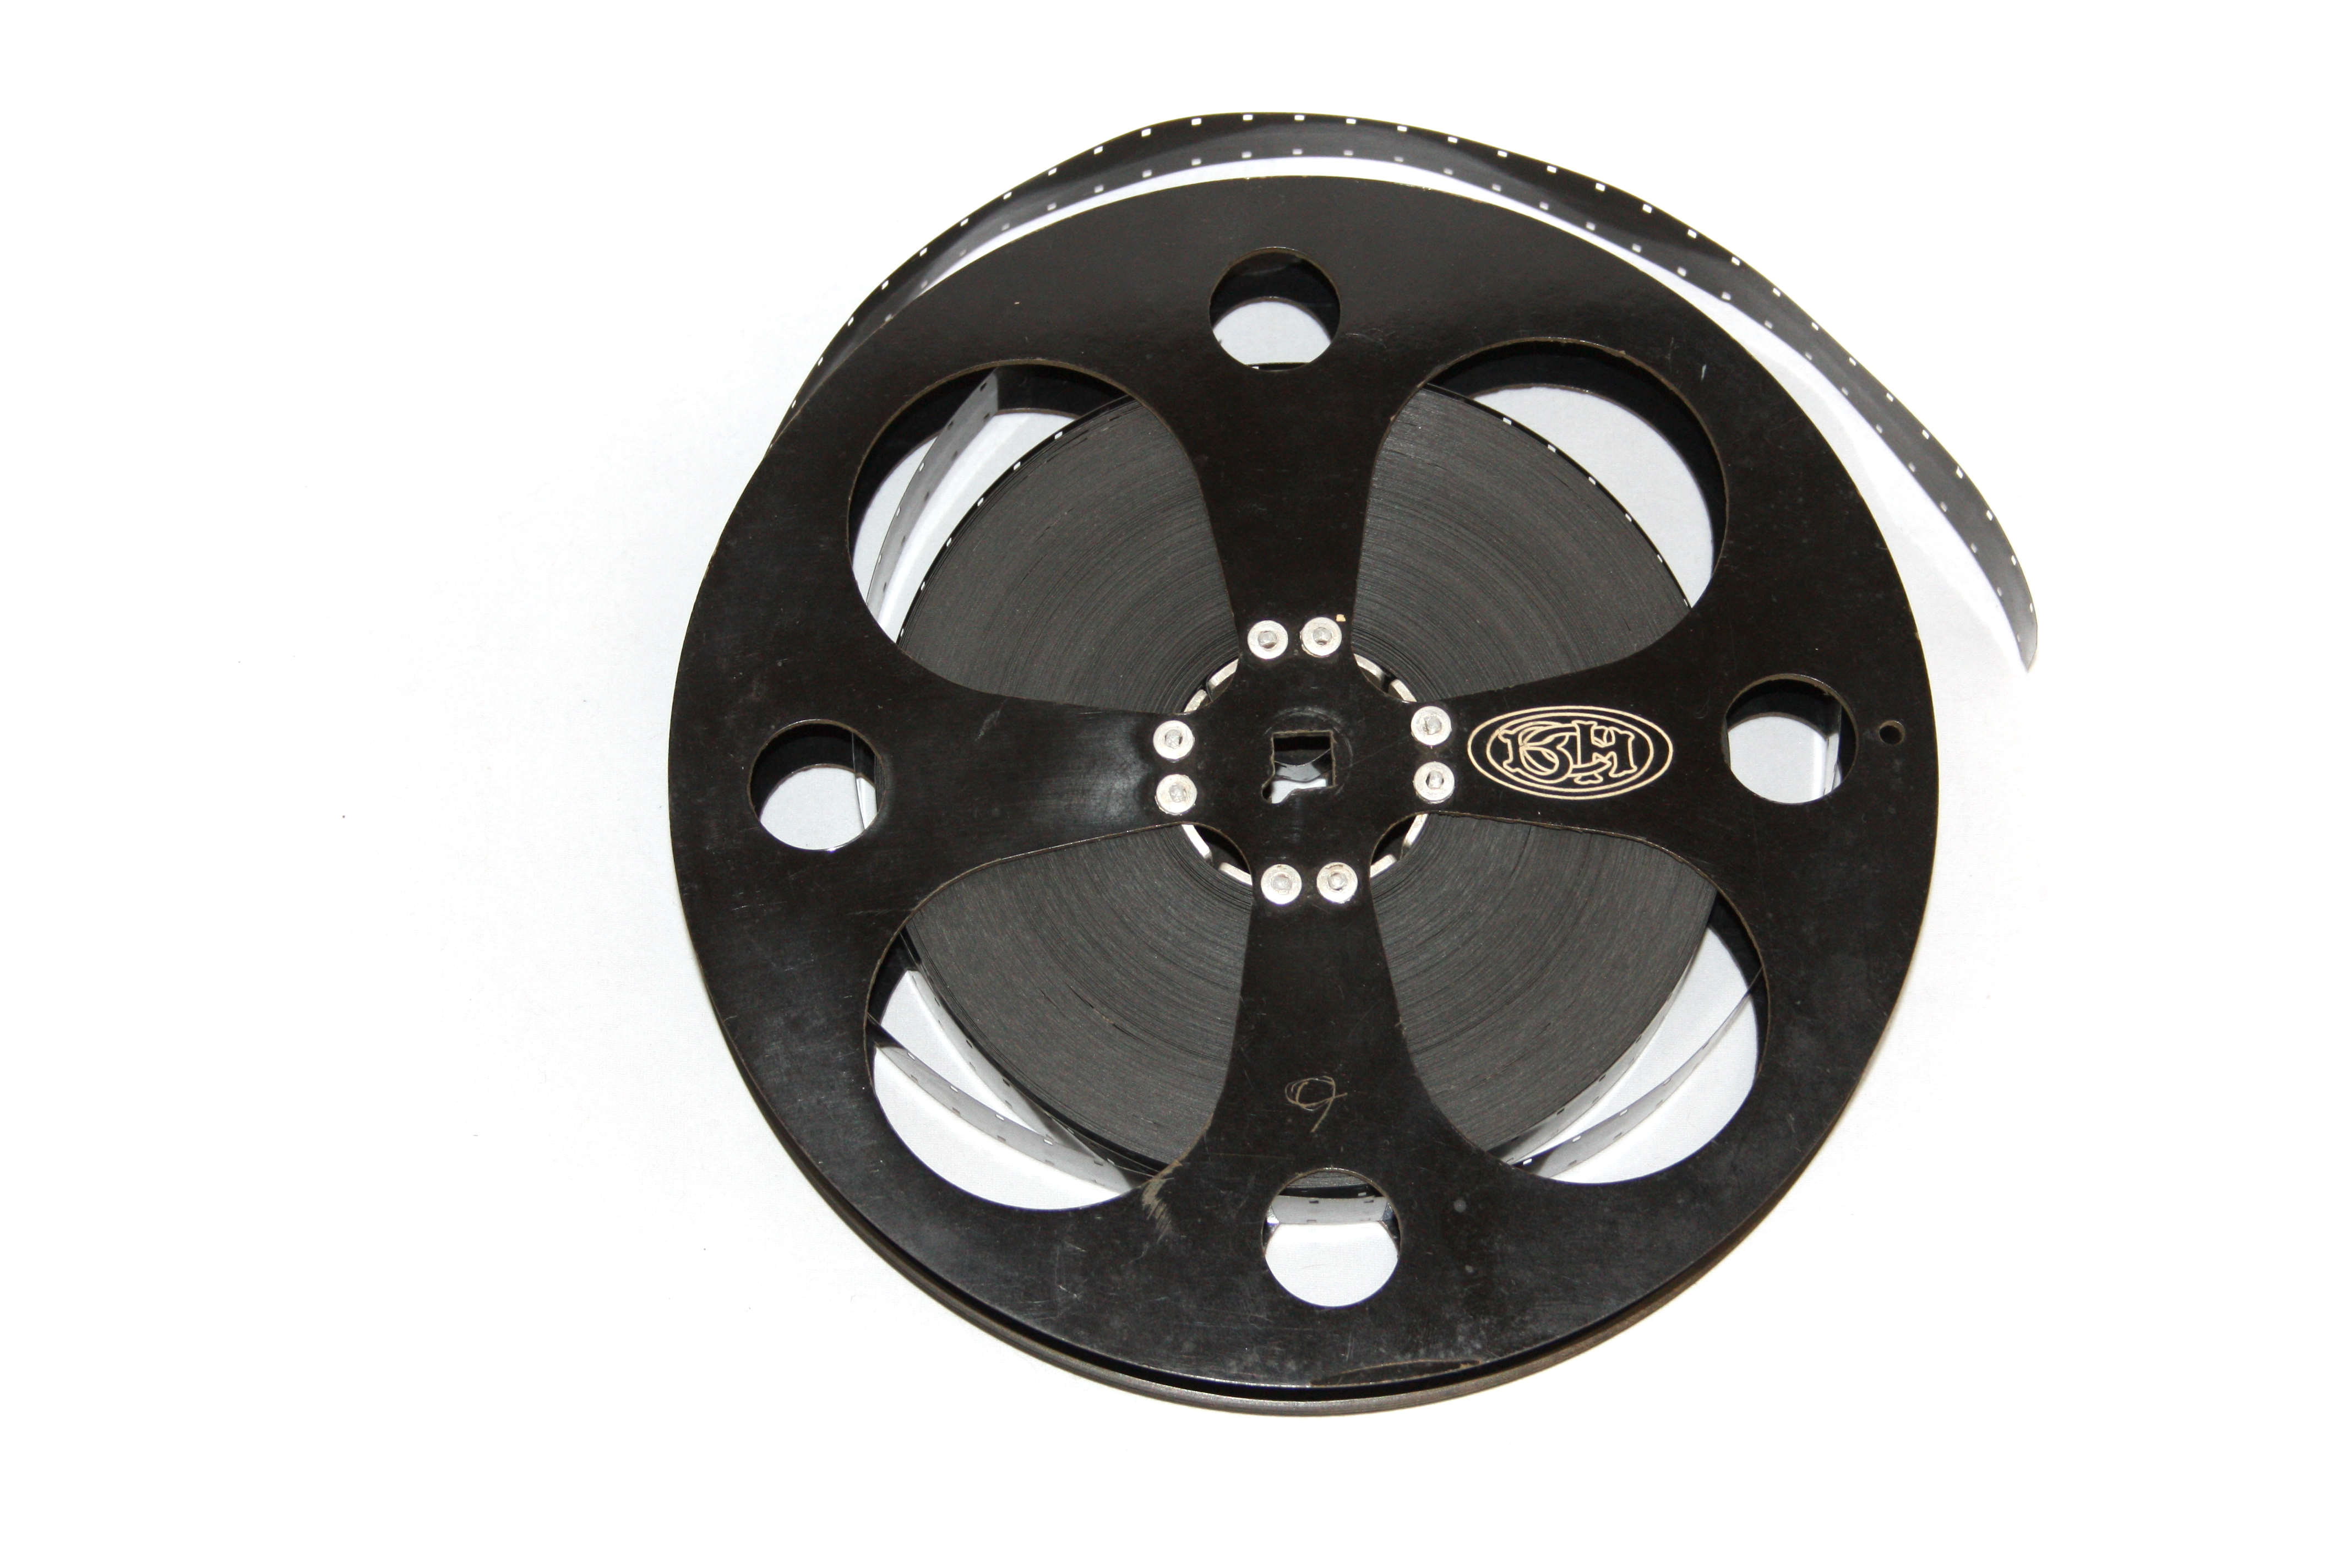 a bakelite reel containing 16mm film